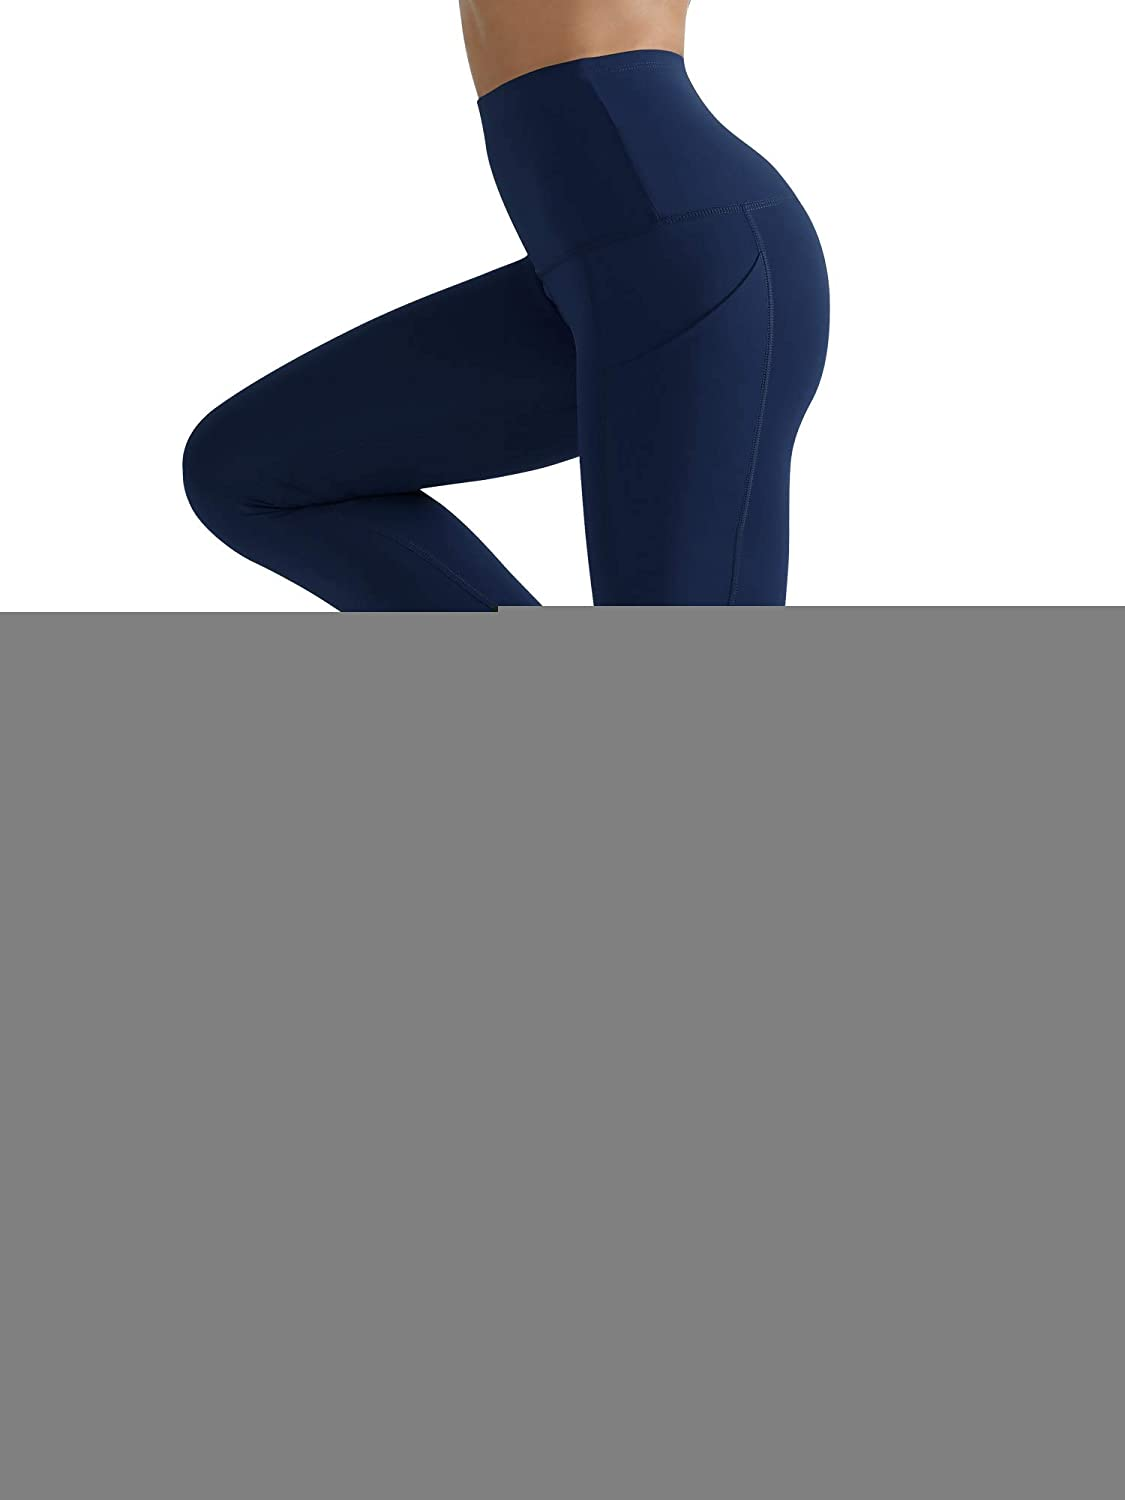 Workout Pants with Pockets for Womens Cadmus High Waist Yoga legggings,Tummy Control